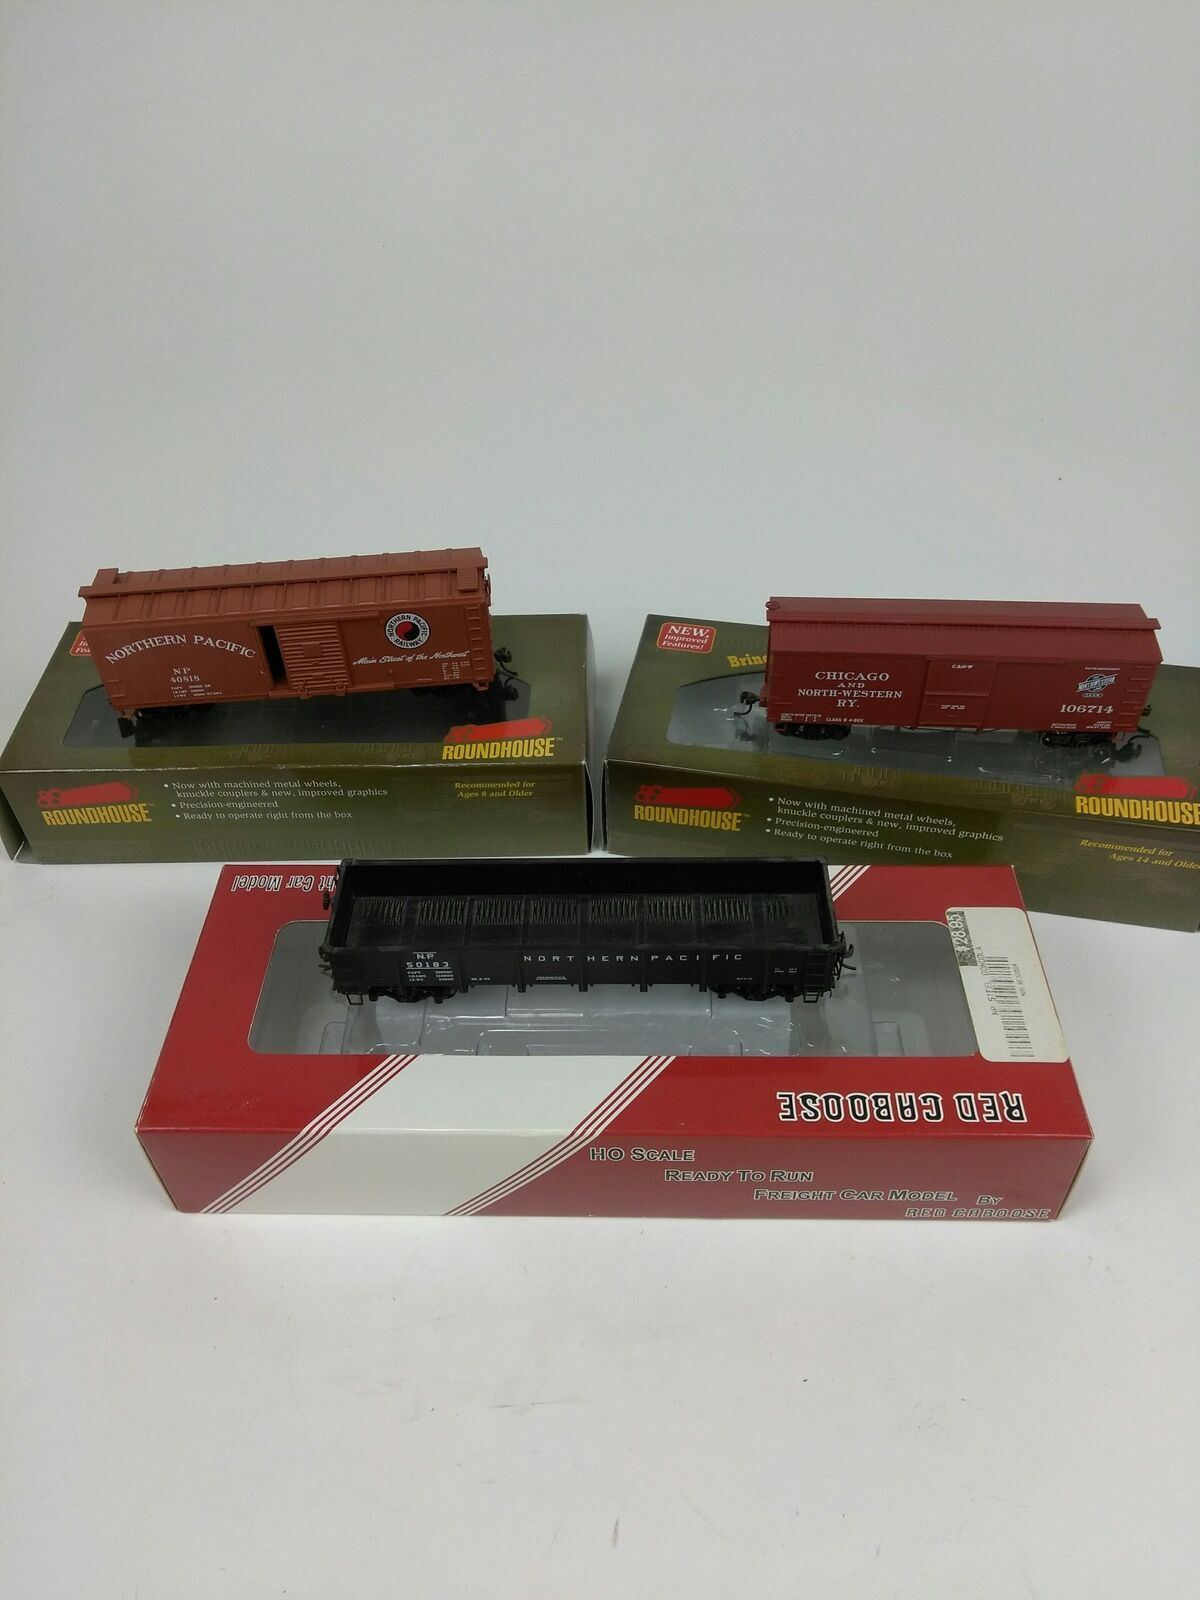 Lot of 3 rosso Caboose / Roundhouse HO box cars in box - 84668, 84255, 50183